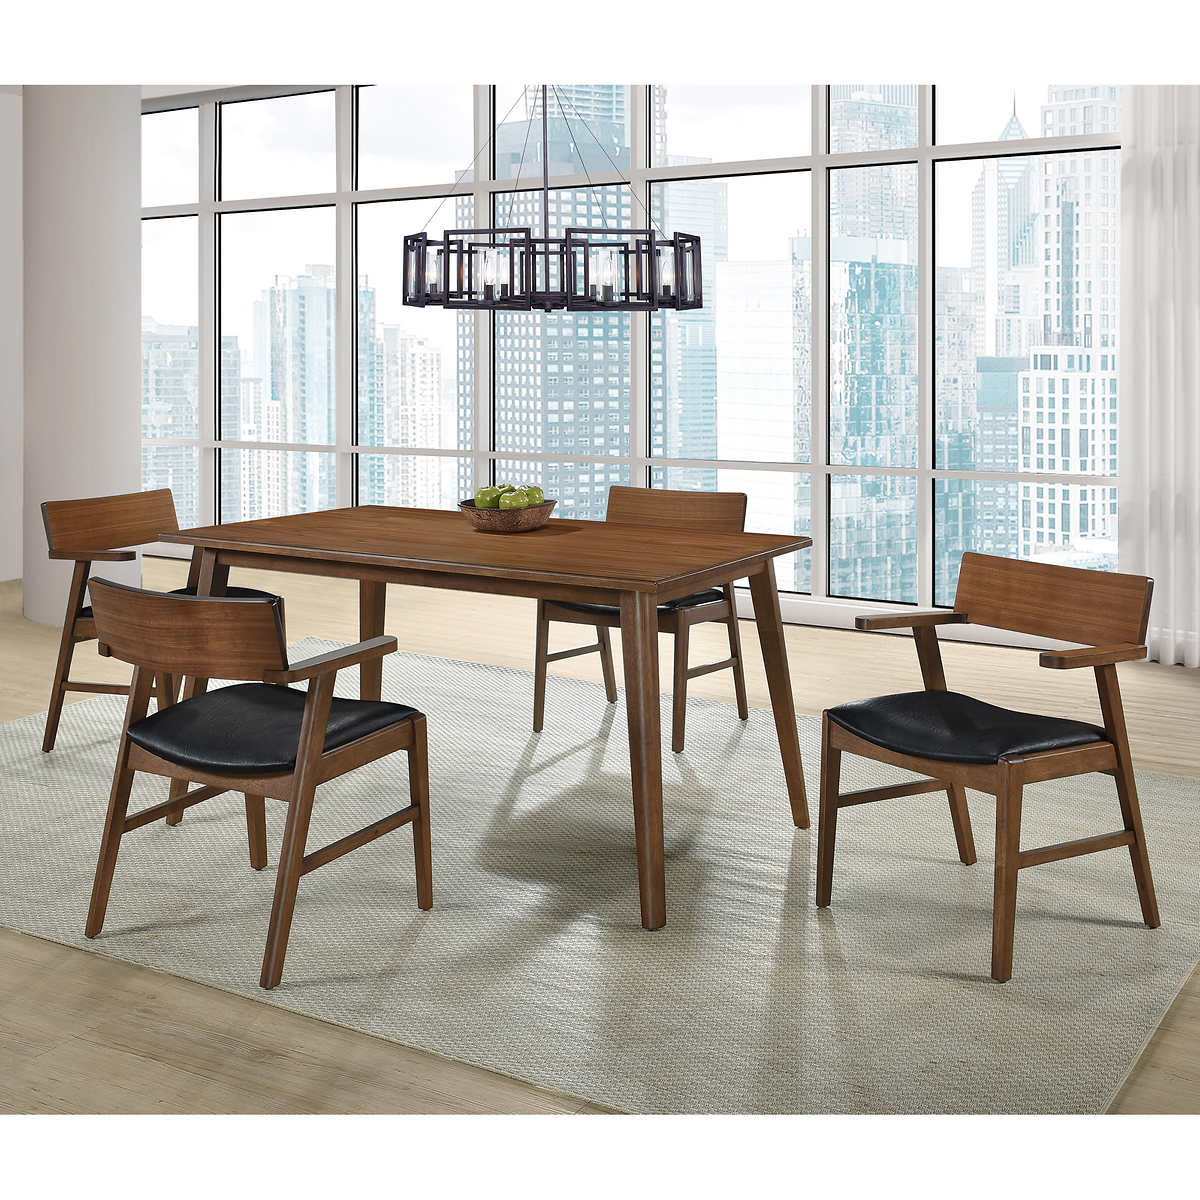 Tufted Chaise Lounge Chair, Eden Condo 5 Piece Dining Room Set